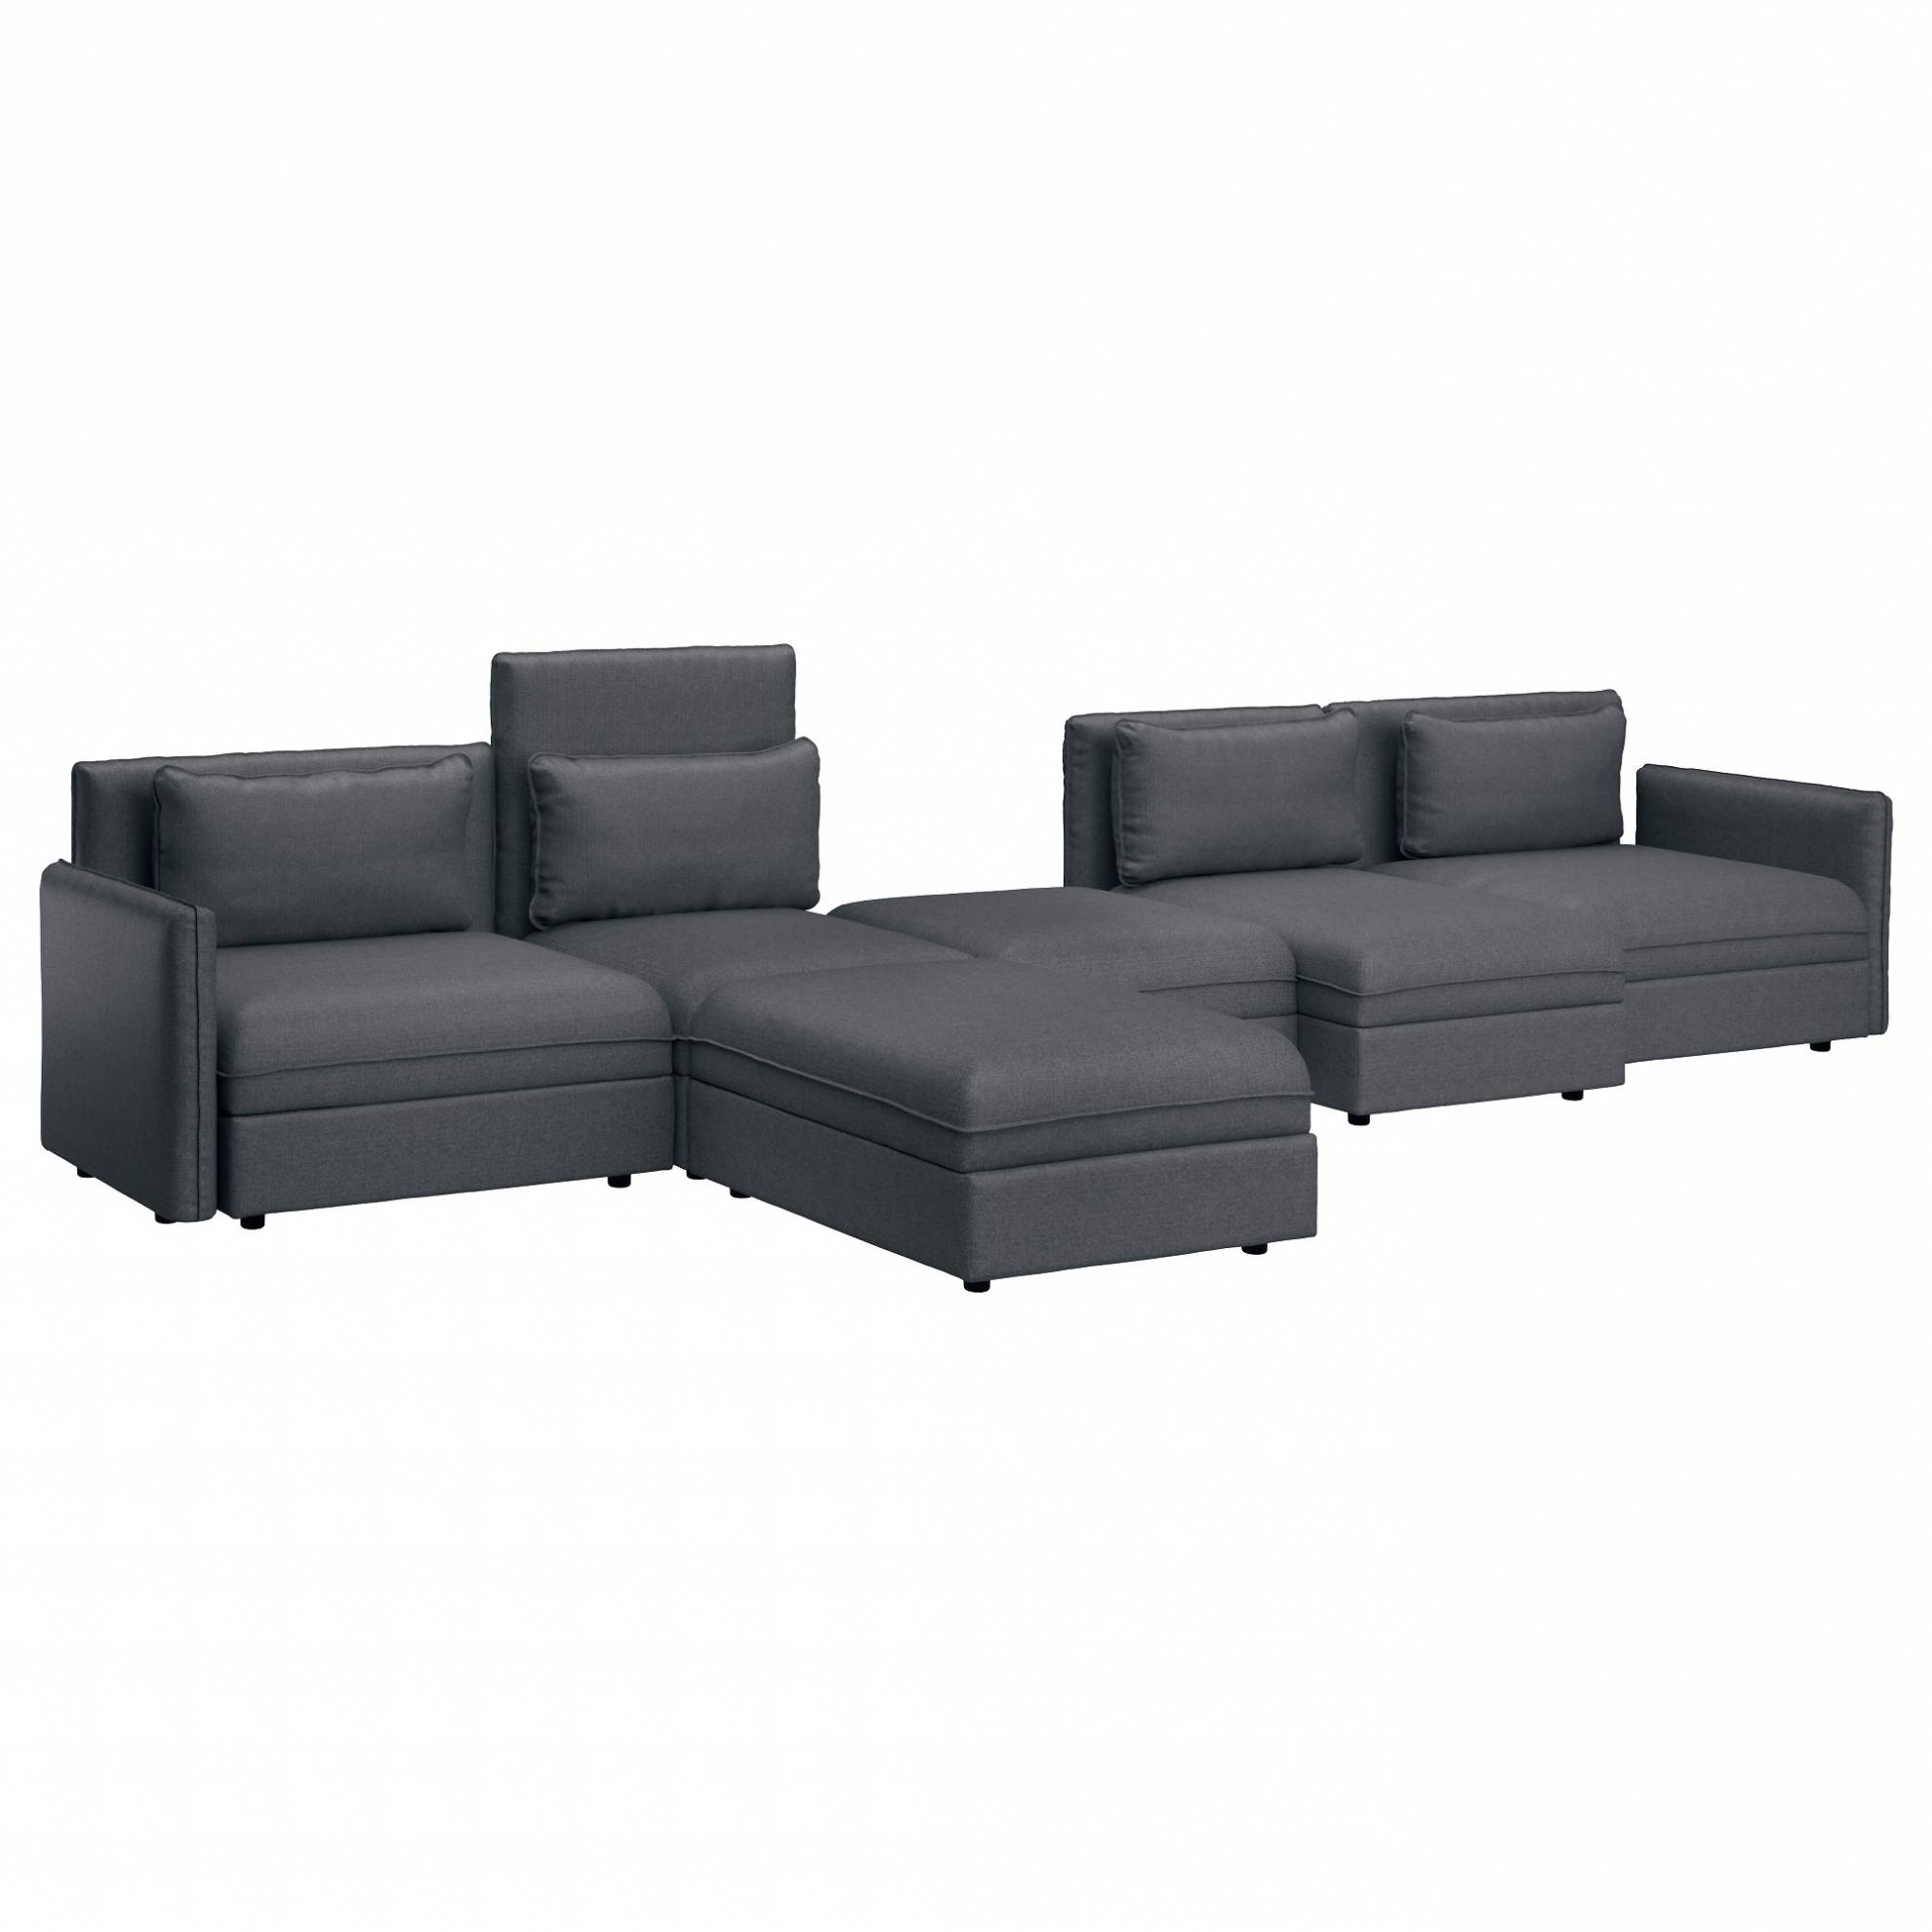 Home Design : Excellent Modular Sofas For Small Spacess for Small Modular Sofas (Image 5 of 25)